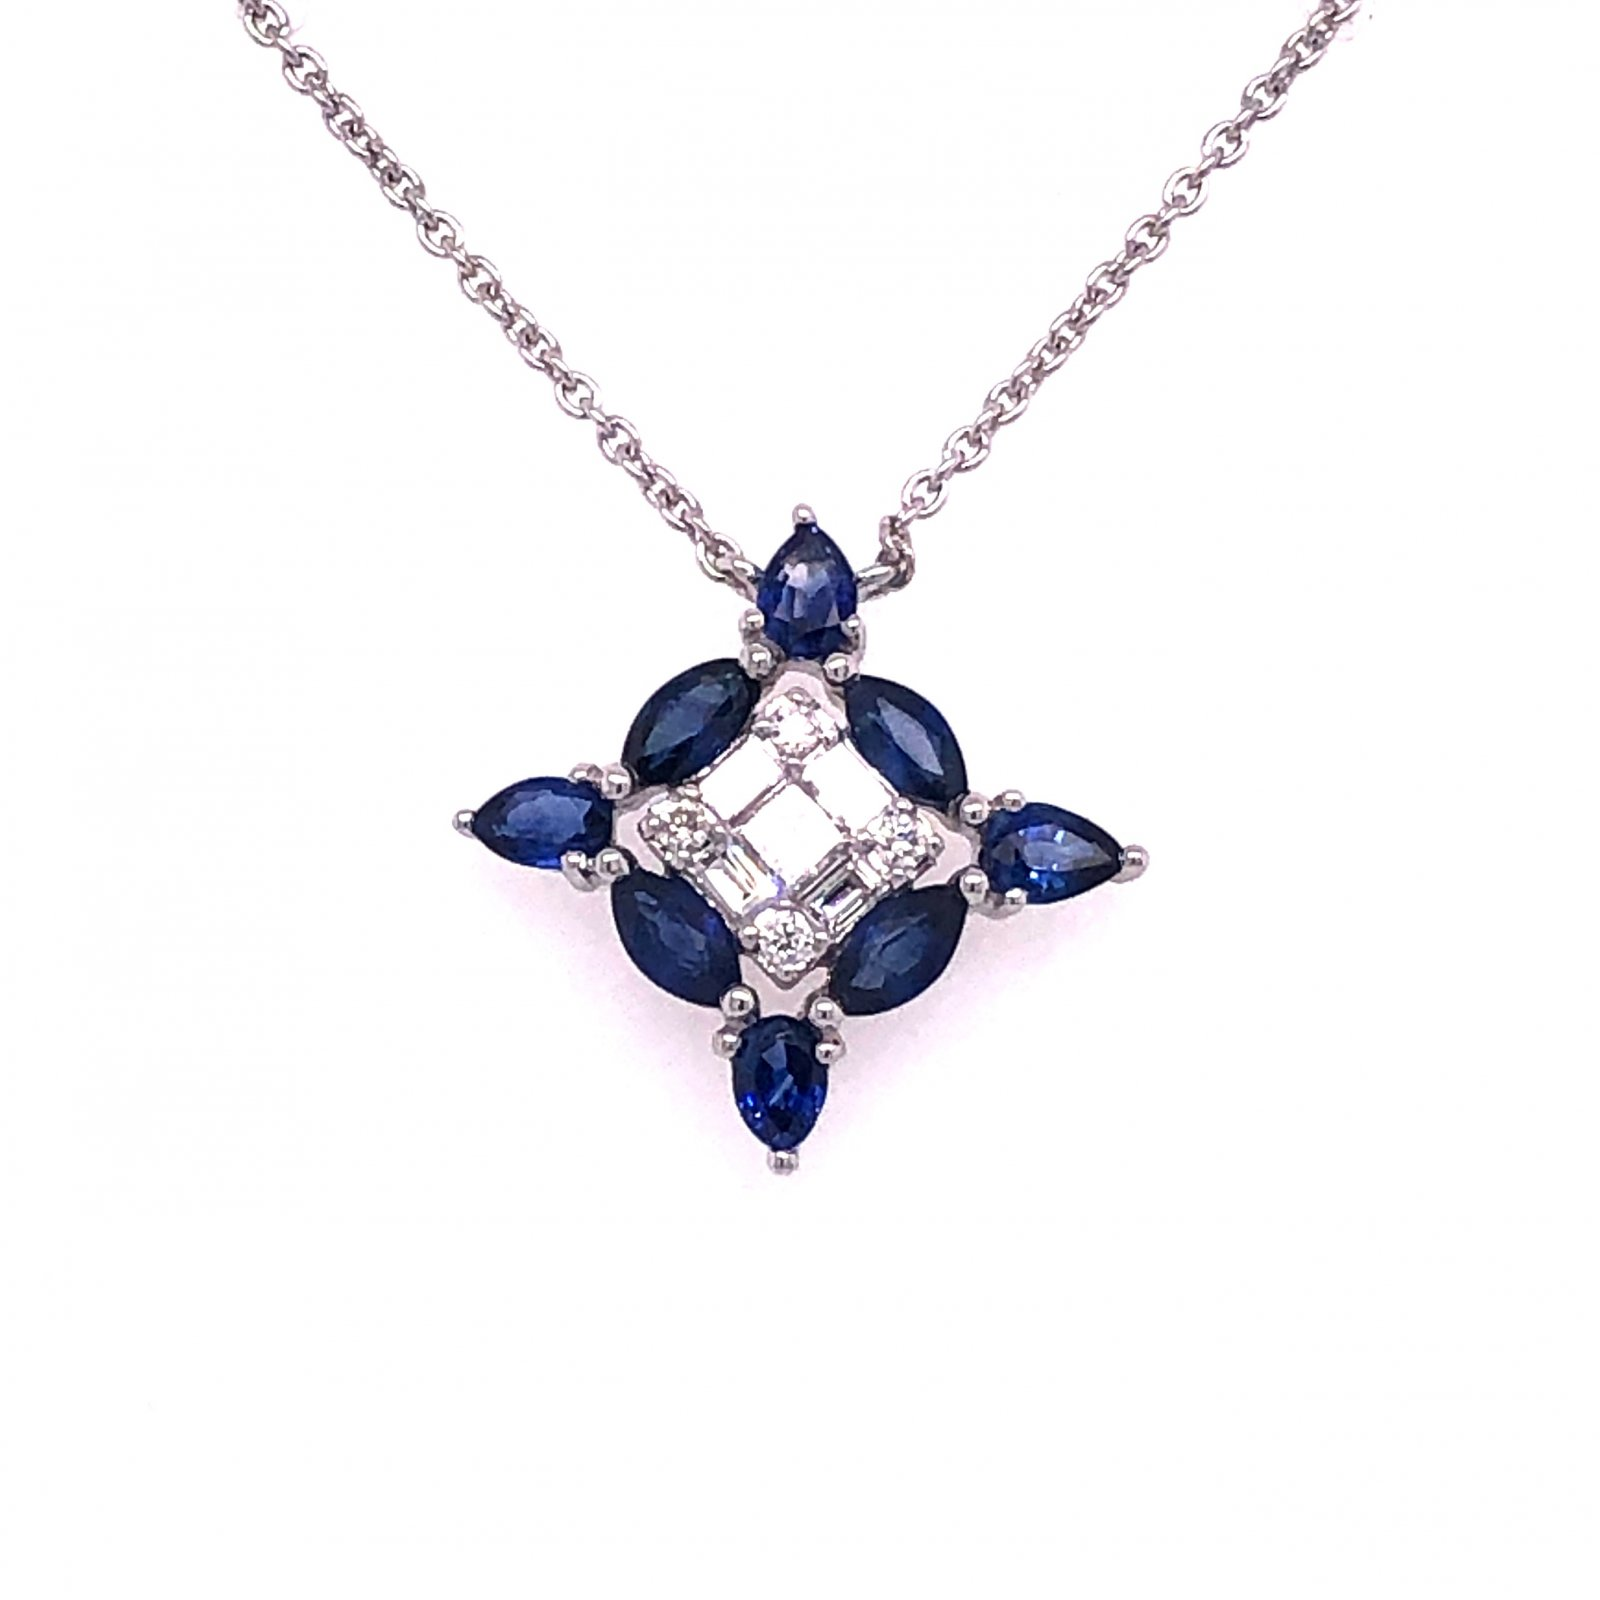 0.67tcw Blue Sapphire & Diamond Necklace set in14k White Gold